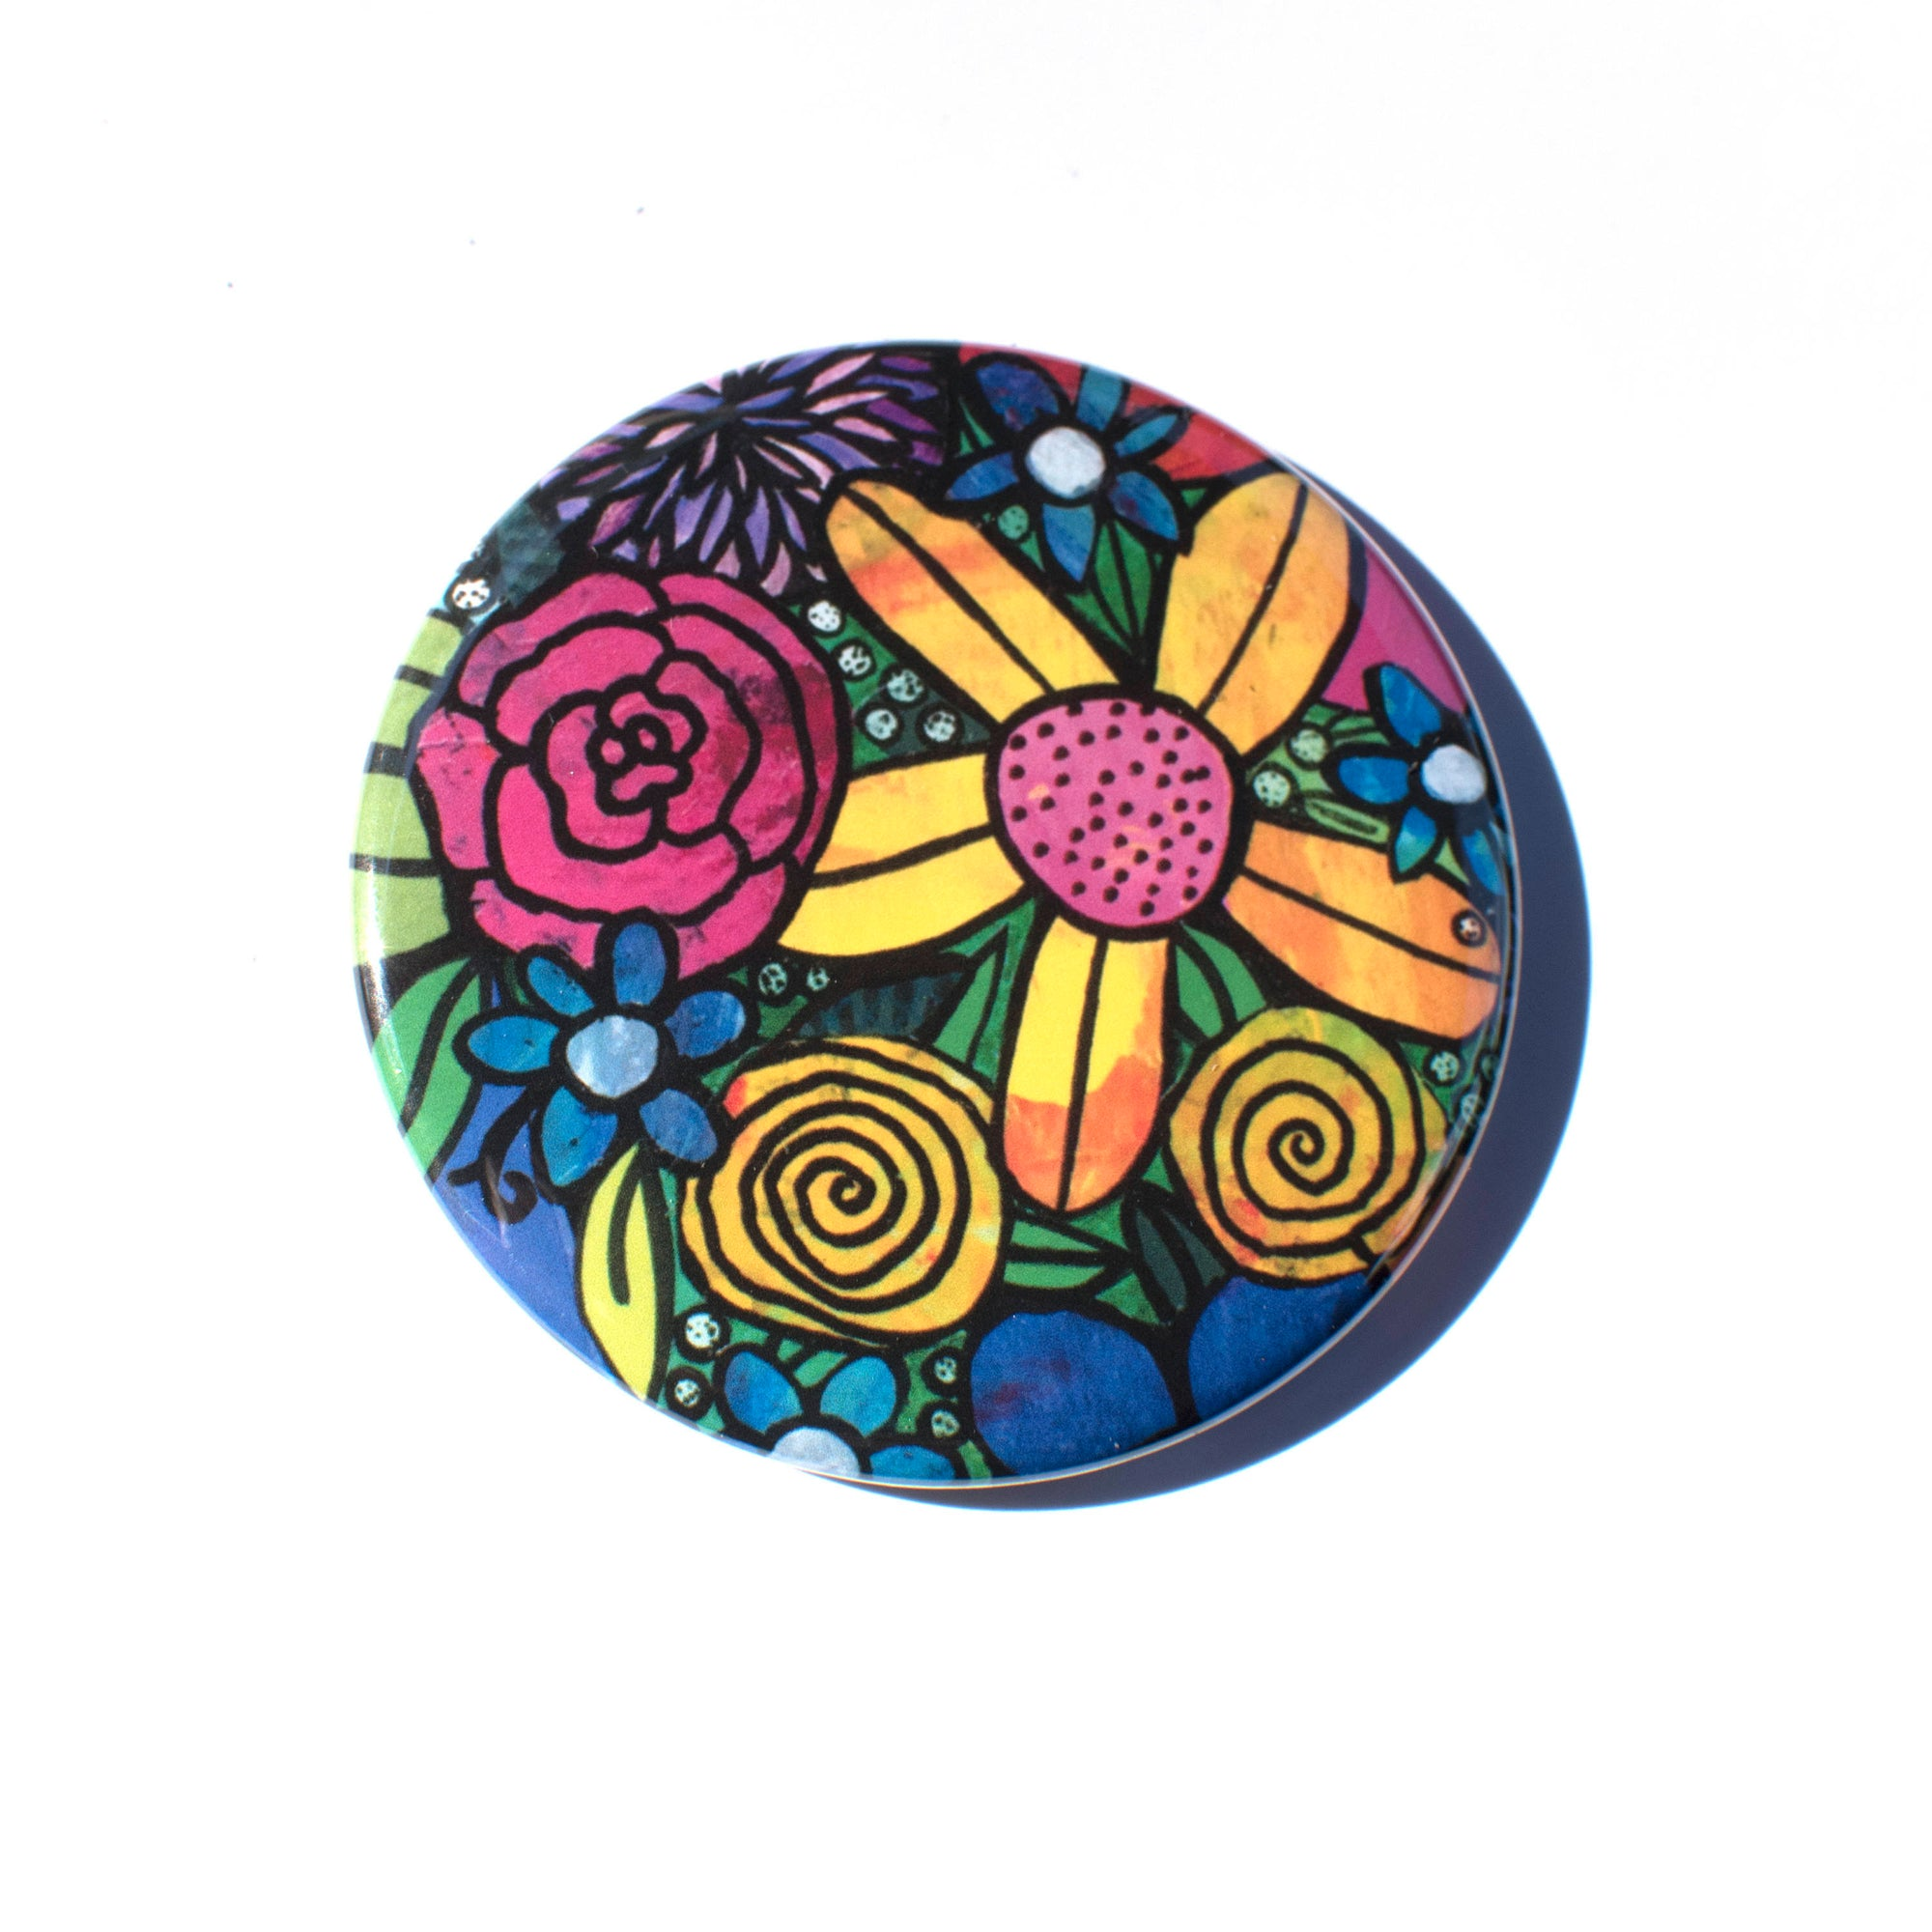 Bouquet of Flowers Pocket Mirror, Fridge Magnet, or Pin